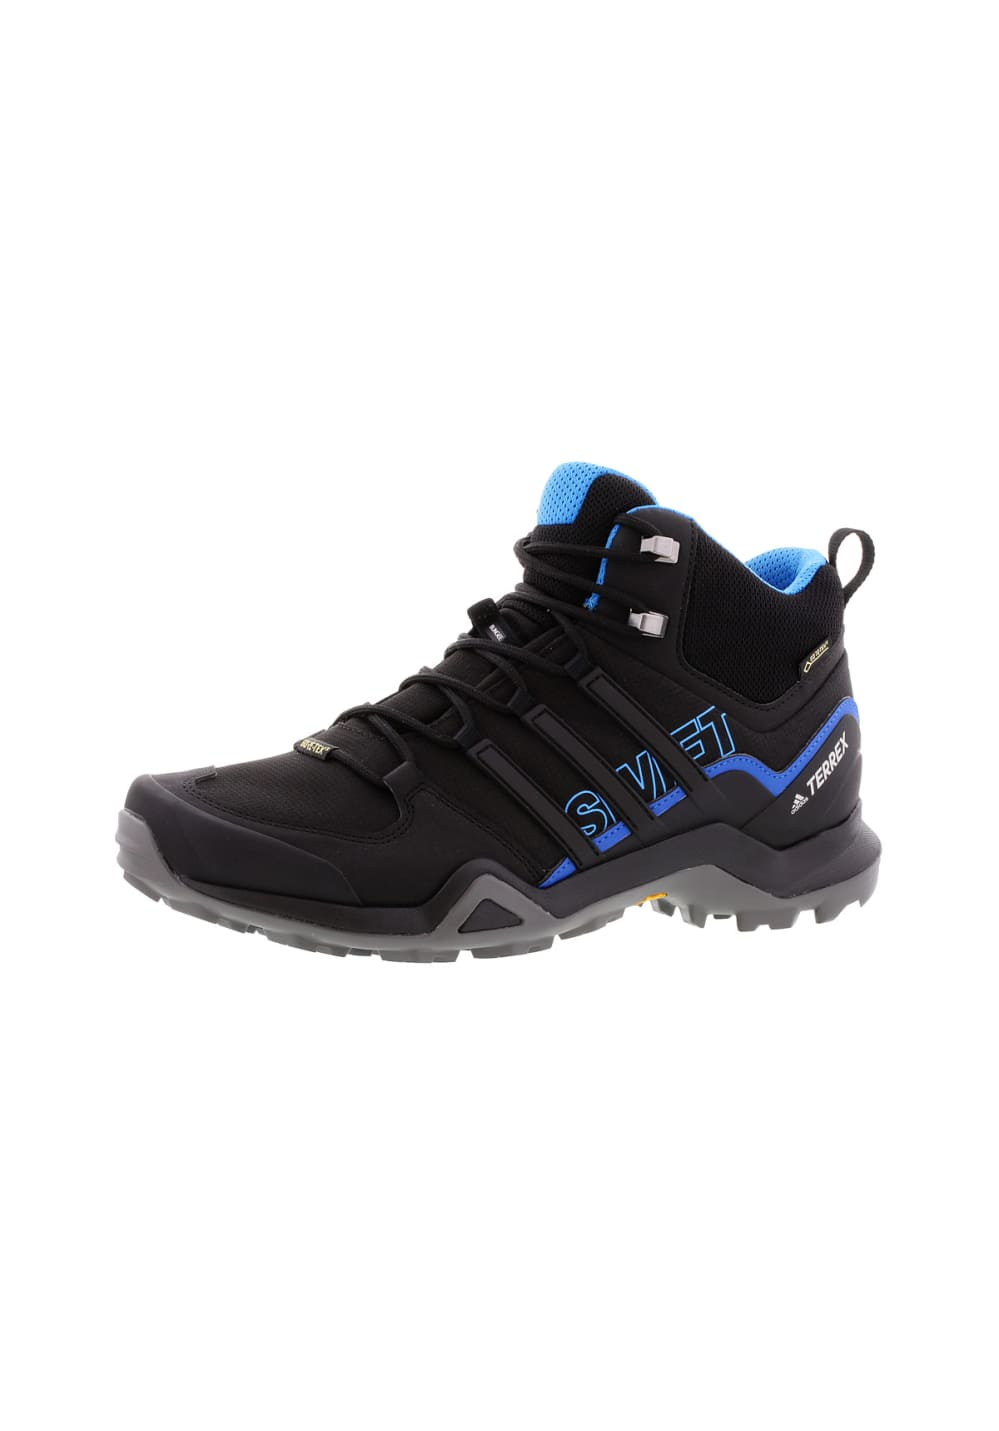 04ec080b6656 Next. -50%. This product is currently out of stock. adidas TERREX. Terrex  Swift R2 Mid Gtx - Outdoor shoes for Men